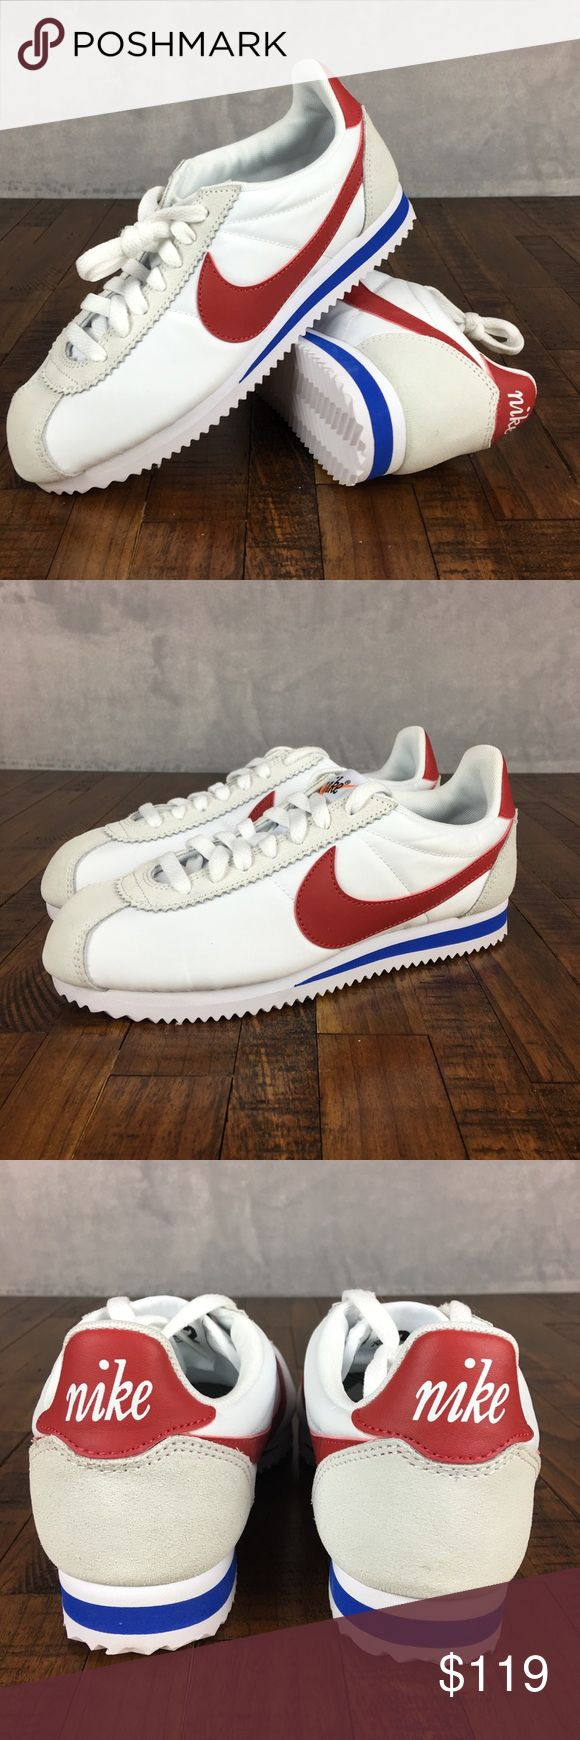 NEW Nike Classic Cortez Shoes Nylon Premium NIKE CLASSIC CORTEZ PREMIUM SNEAKERS #882258-101  Size:  7, Womens  Color:  Red, White, & Blue  Condition: New without Box; 100% Authentic Nike Shoes Sneakers #sneakersnike